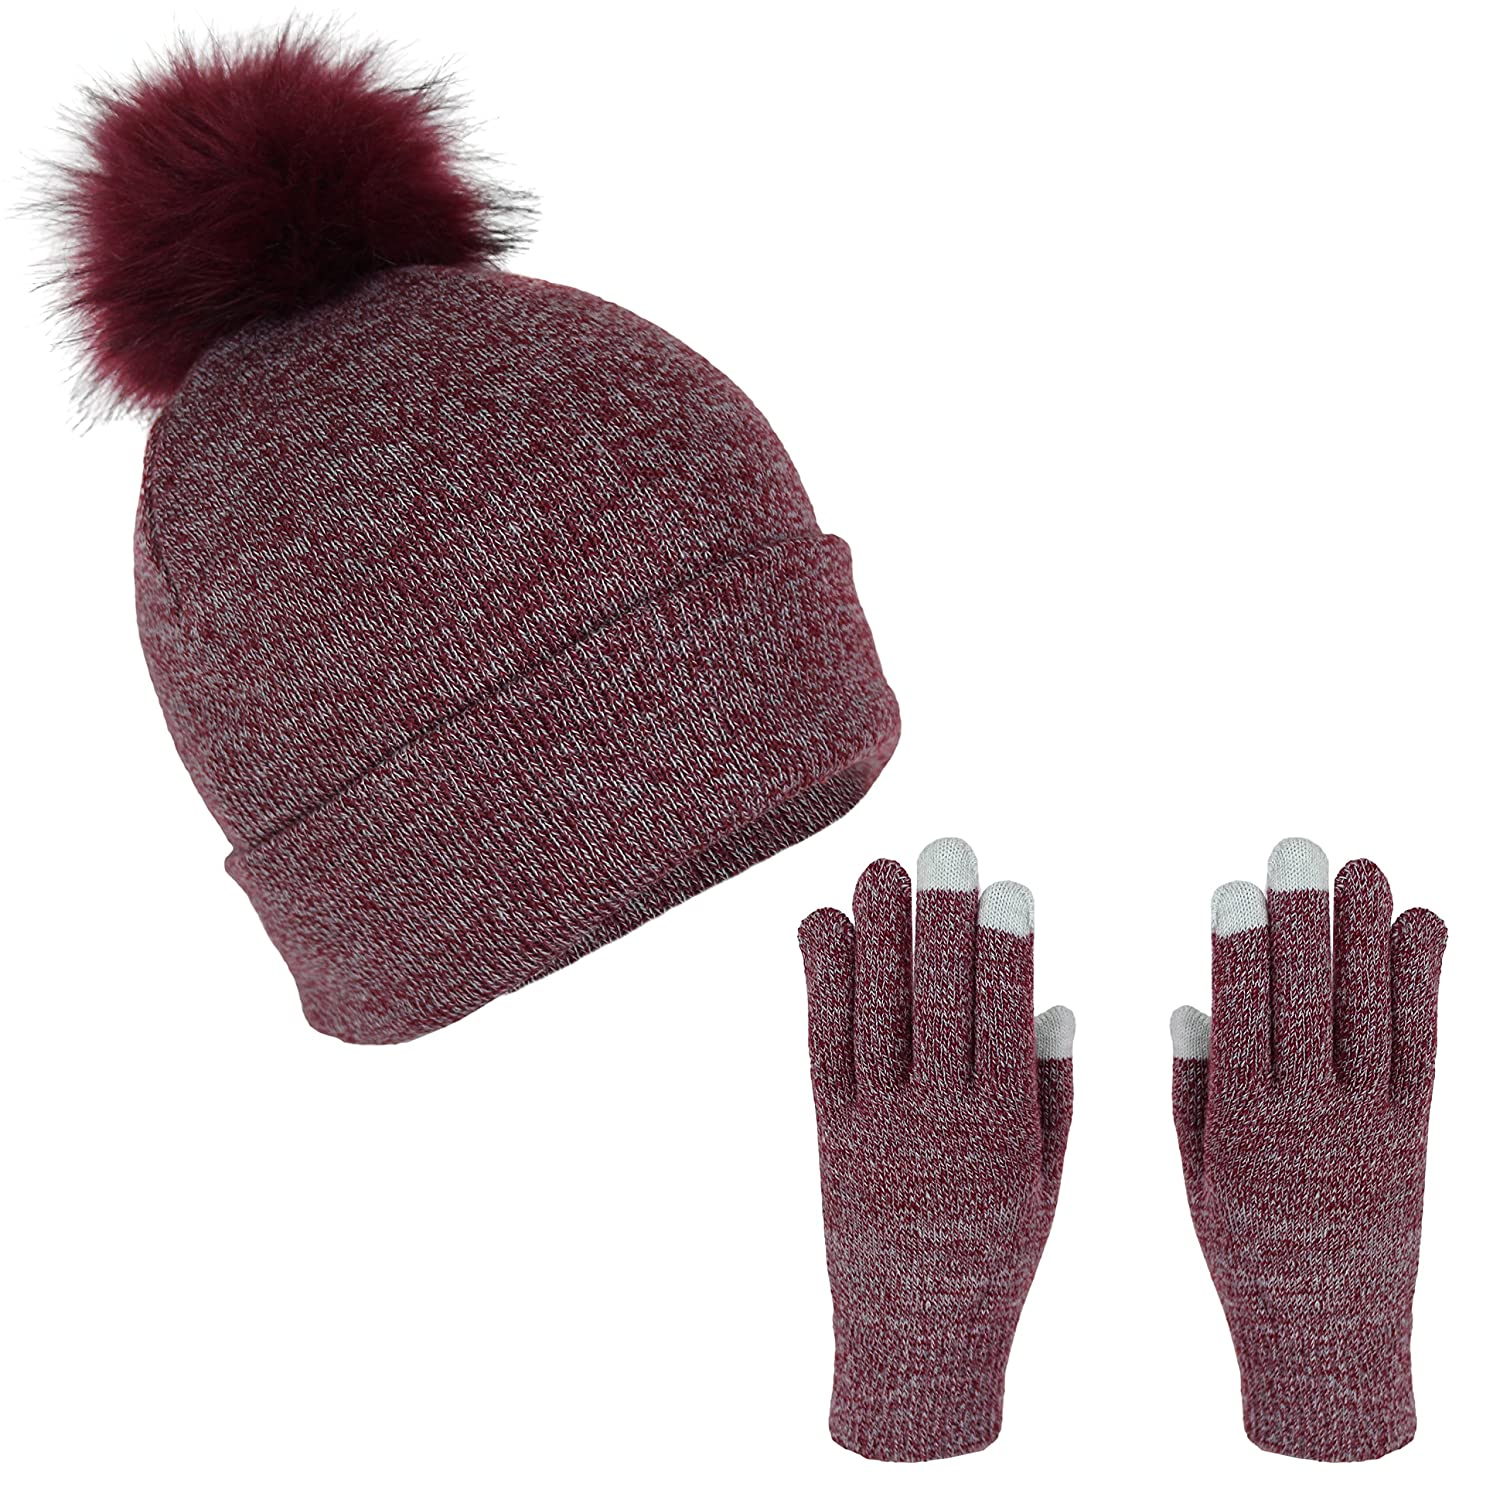 70dfcfd5eeab4 Marled Winter Knit Beanie Hat with Fur Pom Pom and Touch Screen Gloves Gift  Set (Heather Burgundy) at Amazon Women s Clothing store